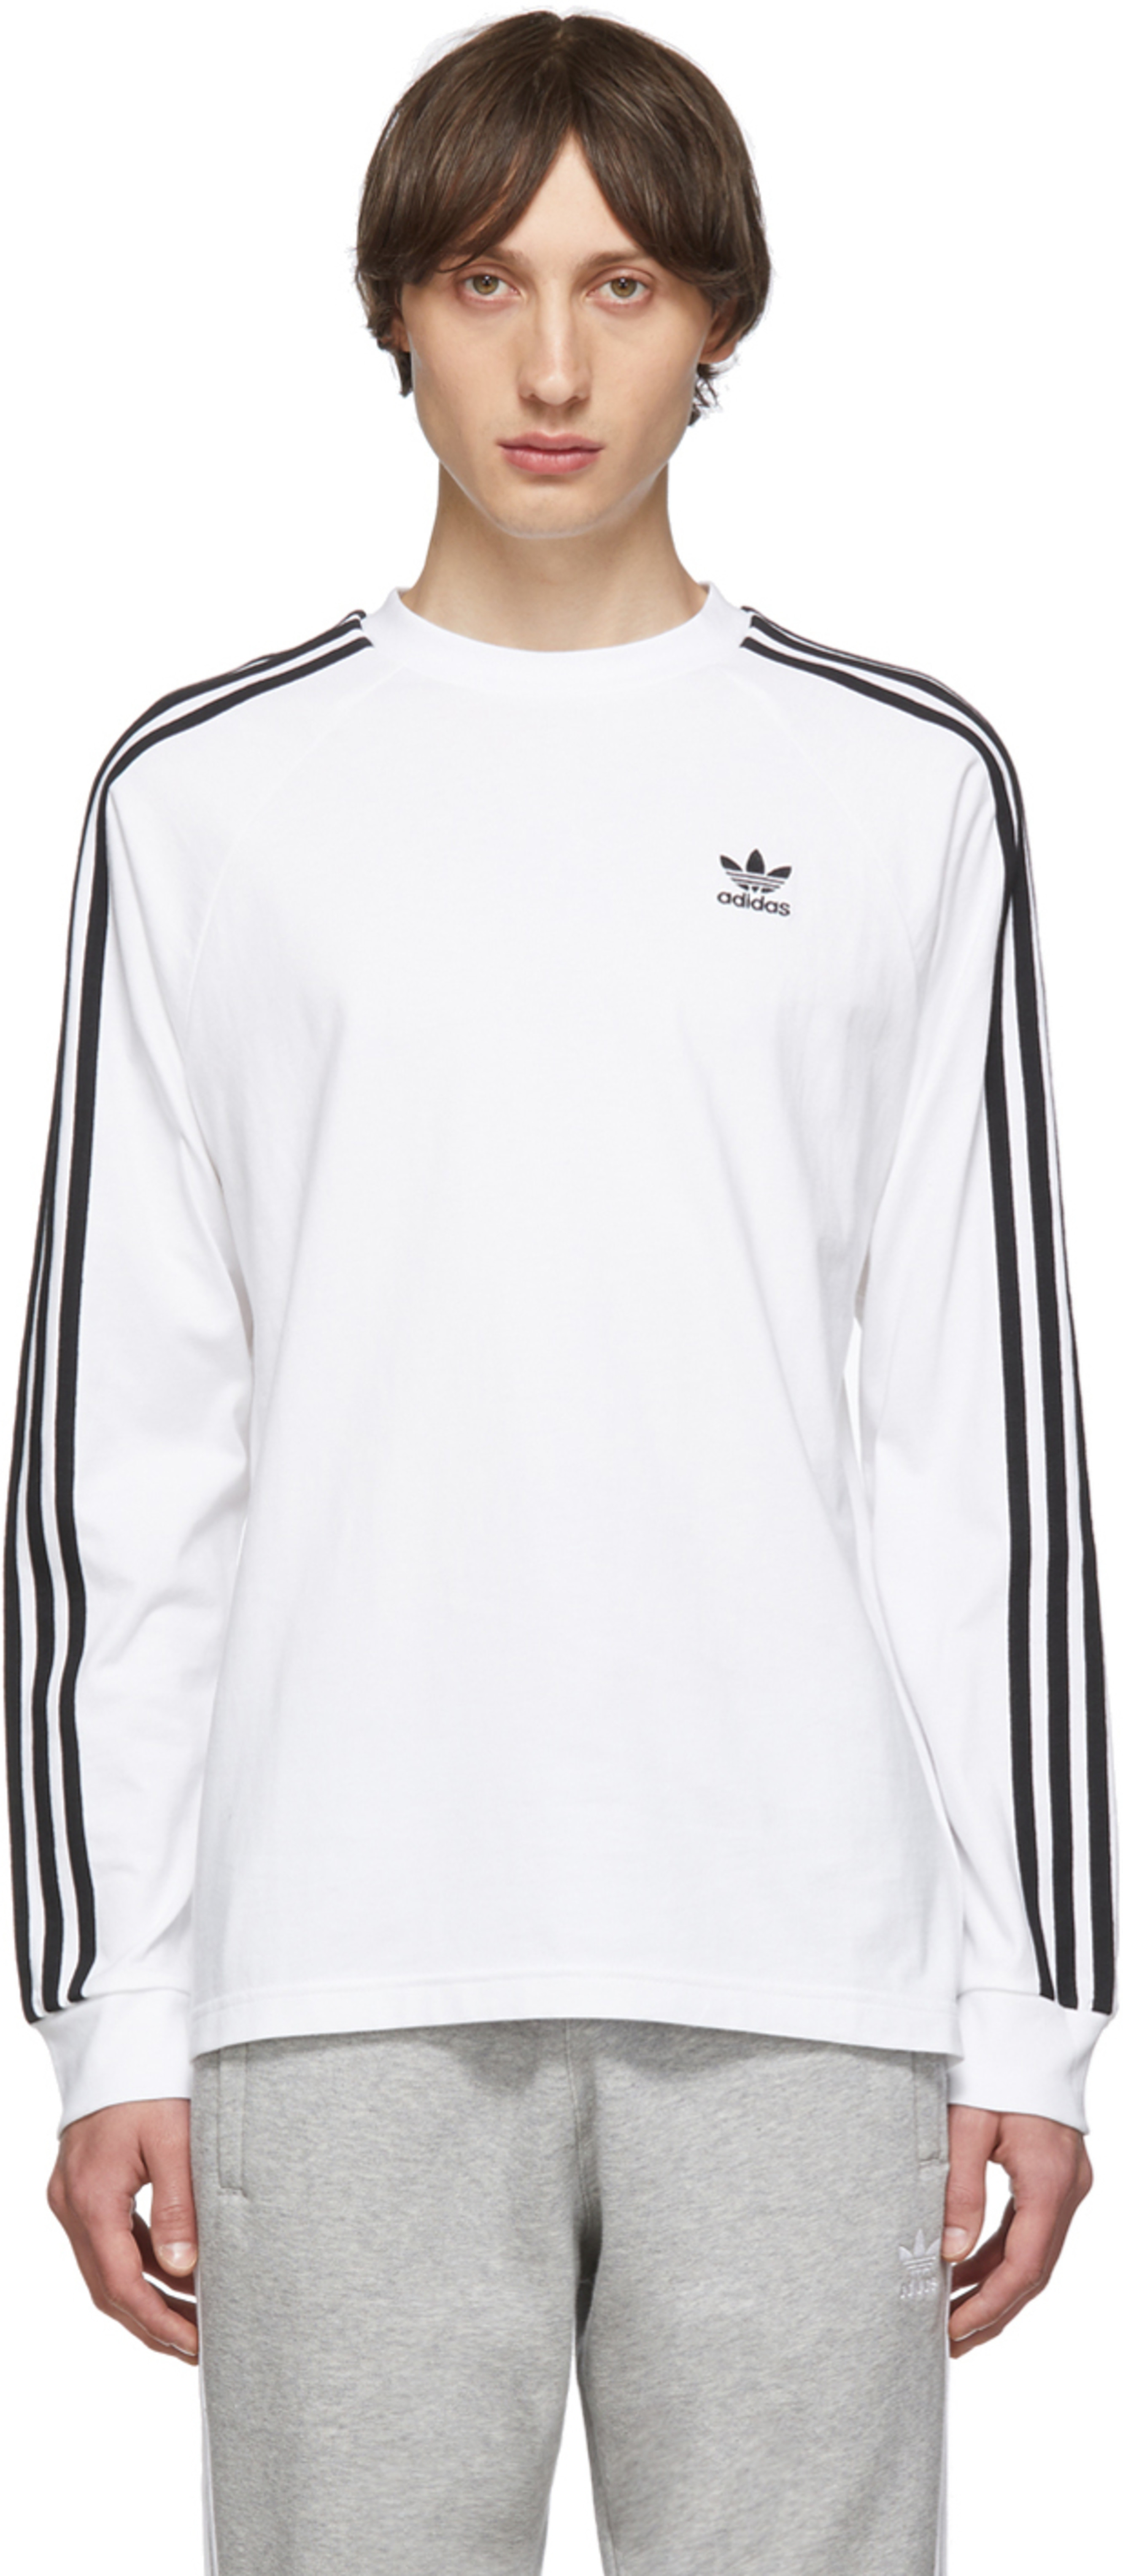 69f9bfc62a75f Adidas Originals for Men SS19 Collection | SSENSE